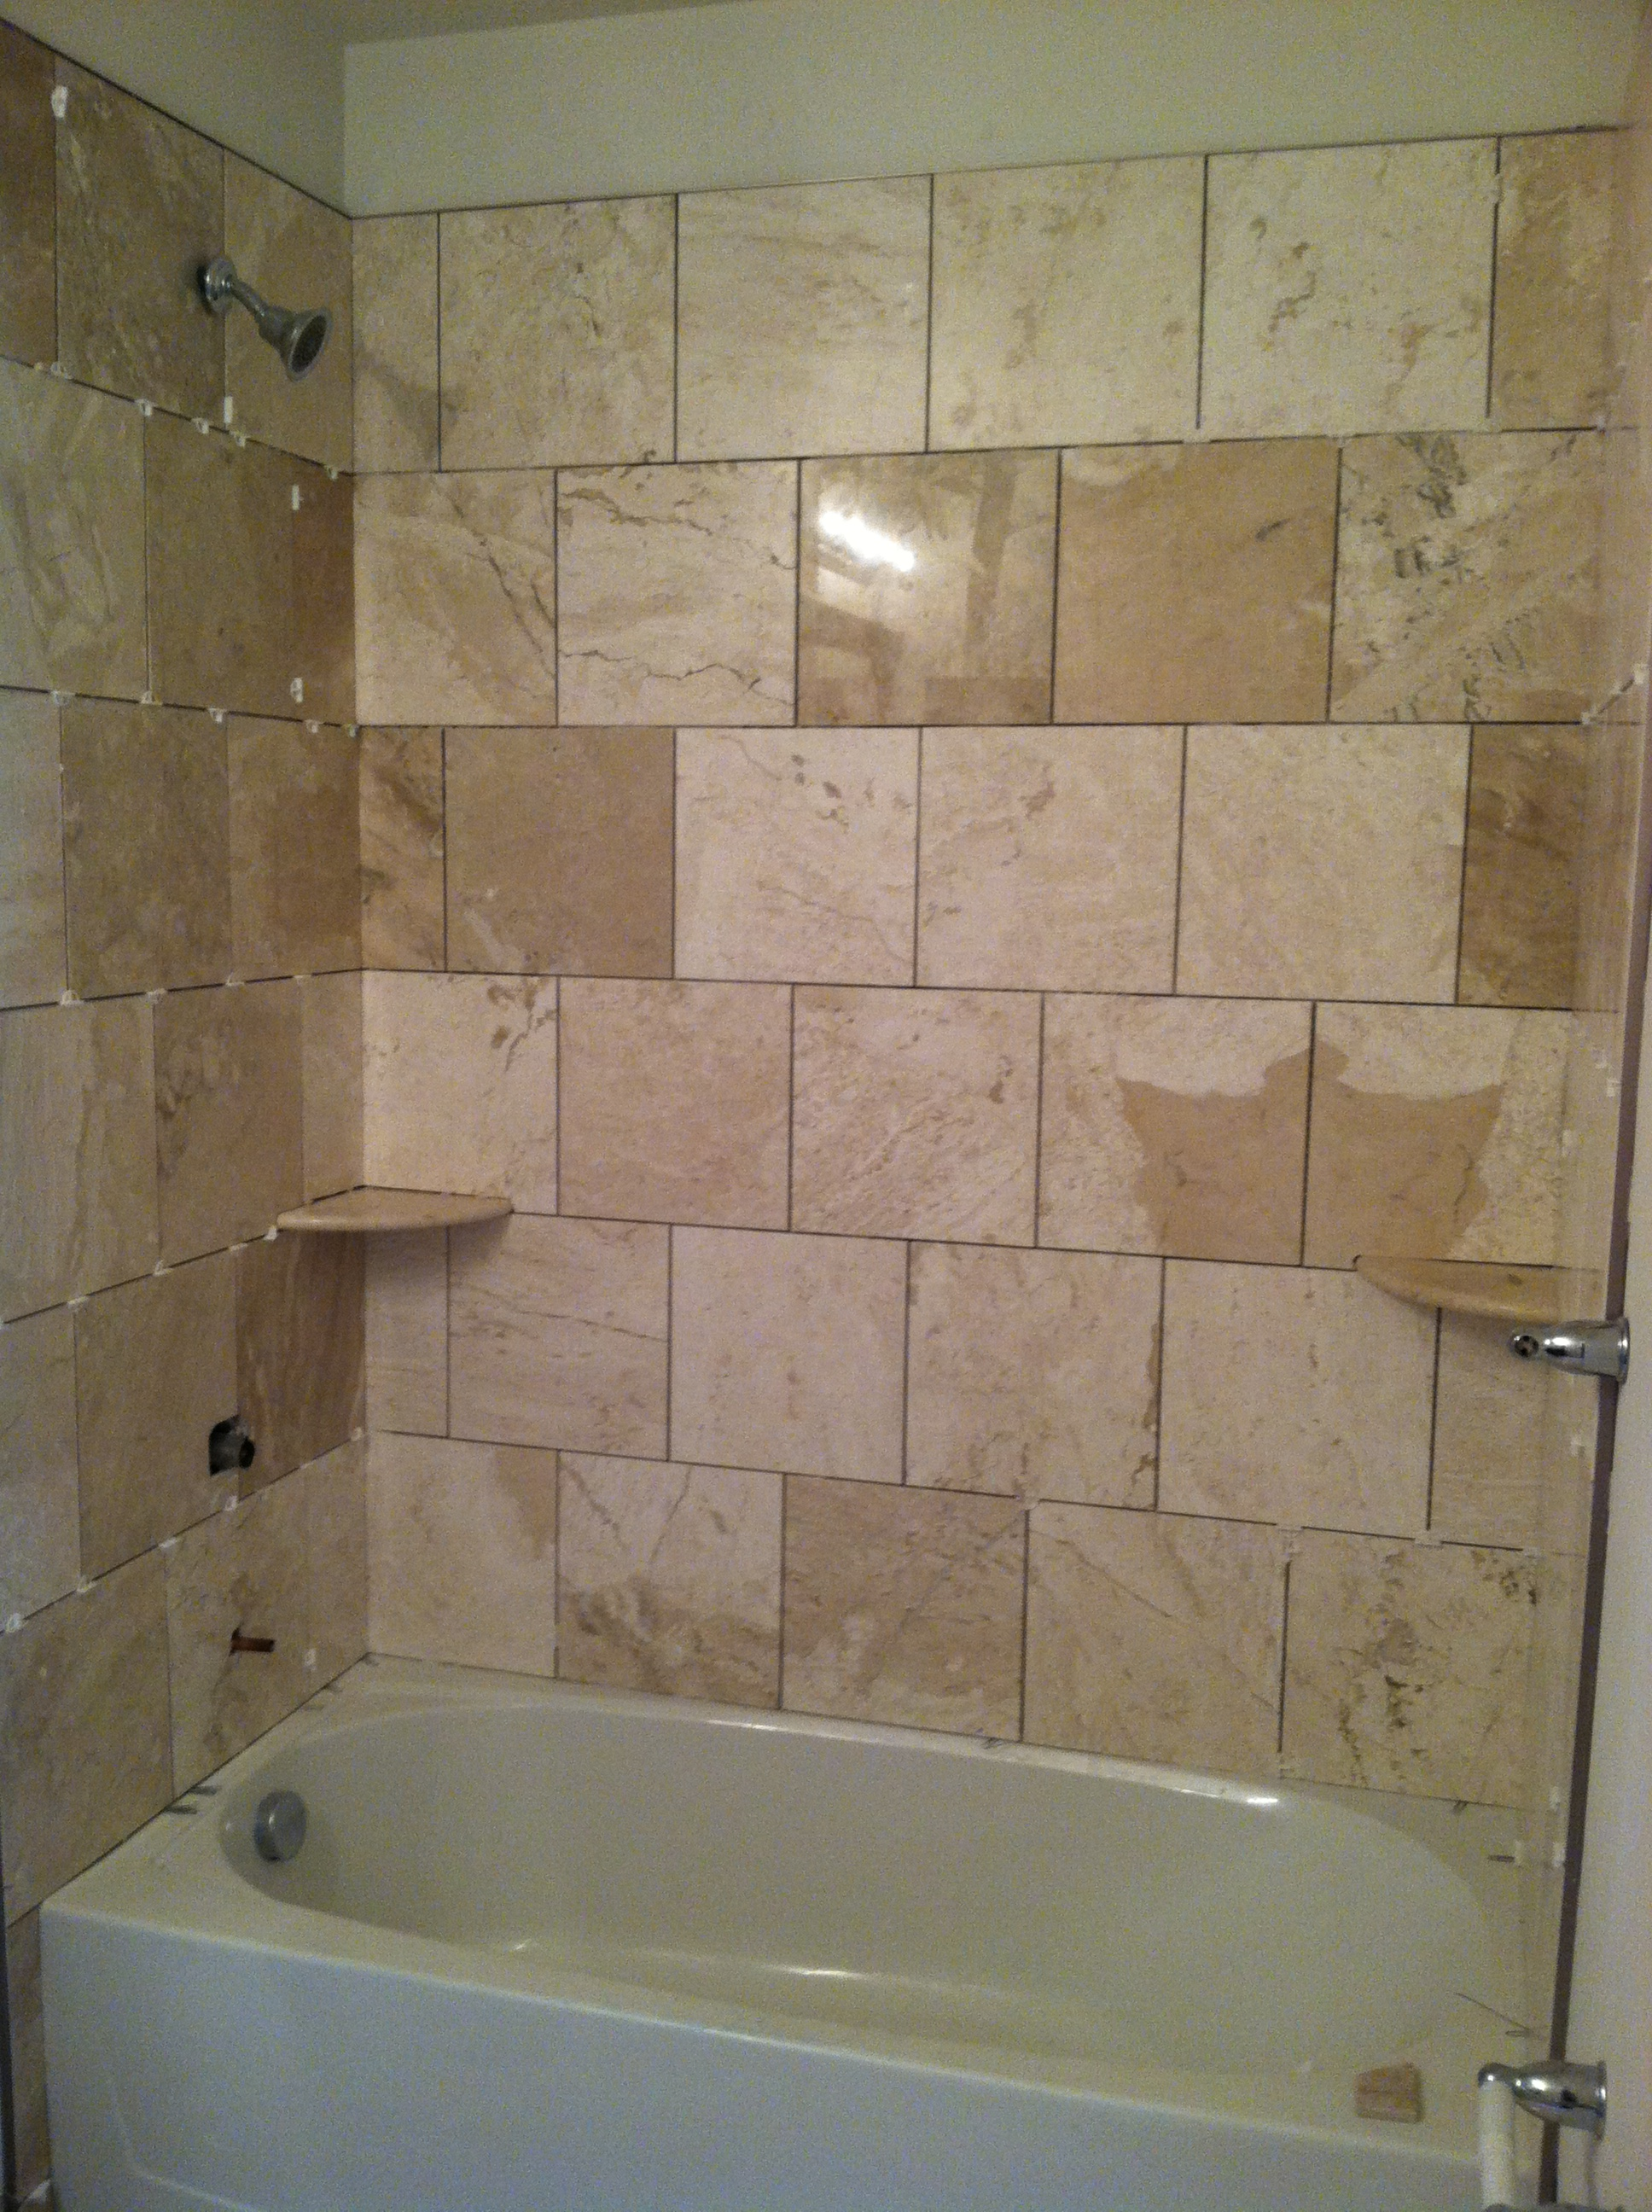 Uncategorized Bathroom Shower Tiles Pictures design with tiles a cost saving approach to bath and shower south new jersey remodeling house renovation home improvement contractor build addition kitchen bathroom showe